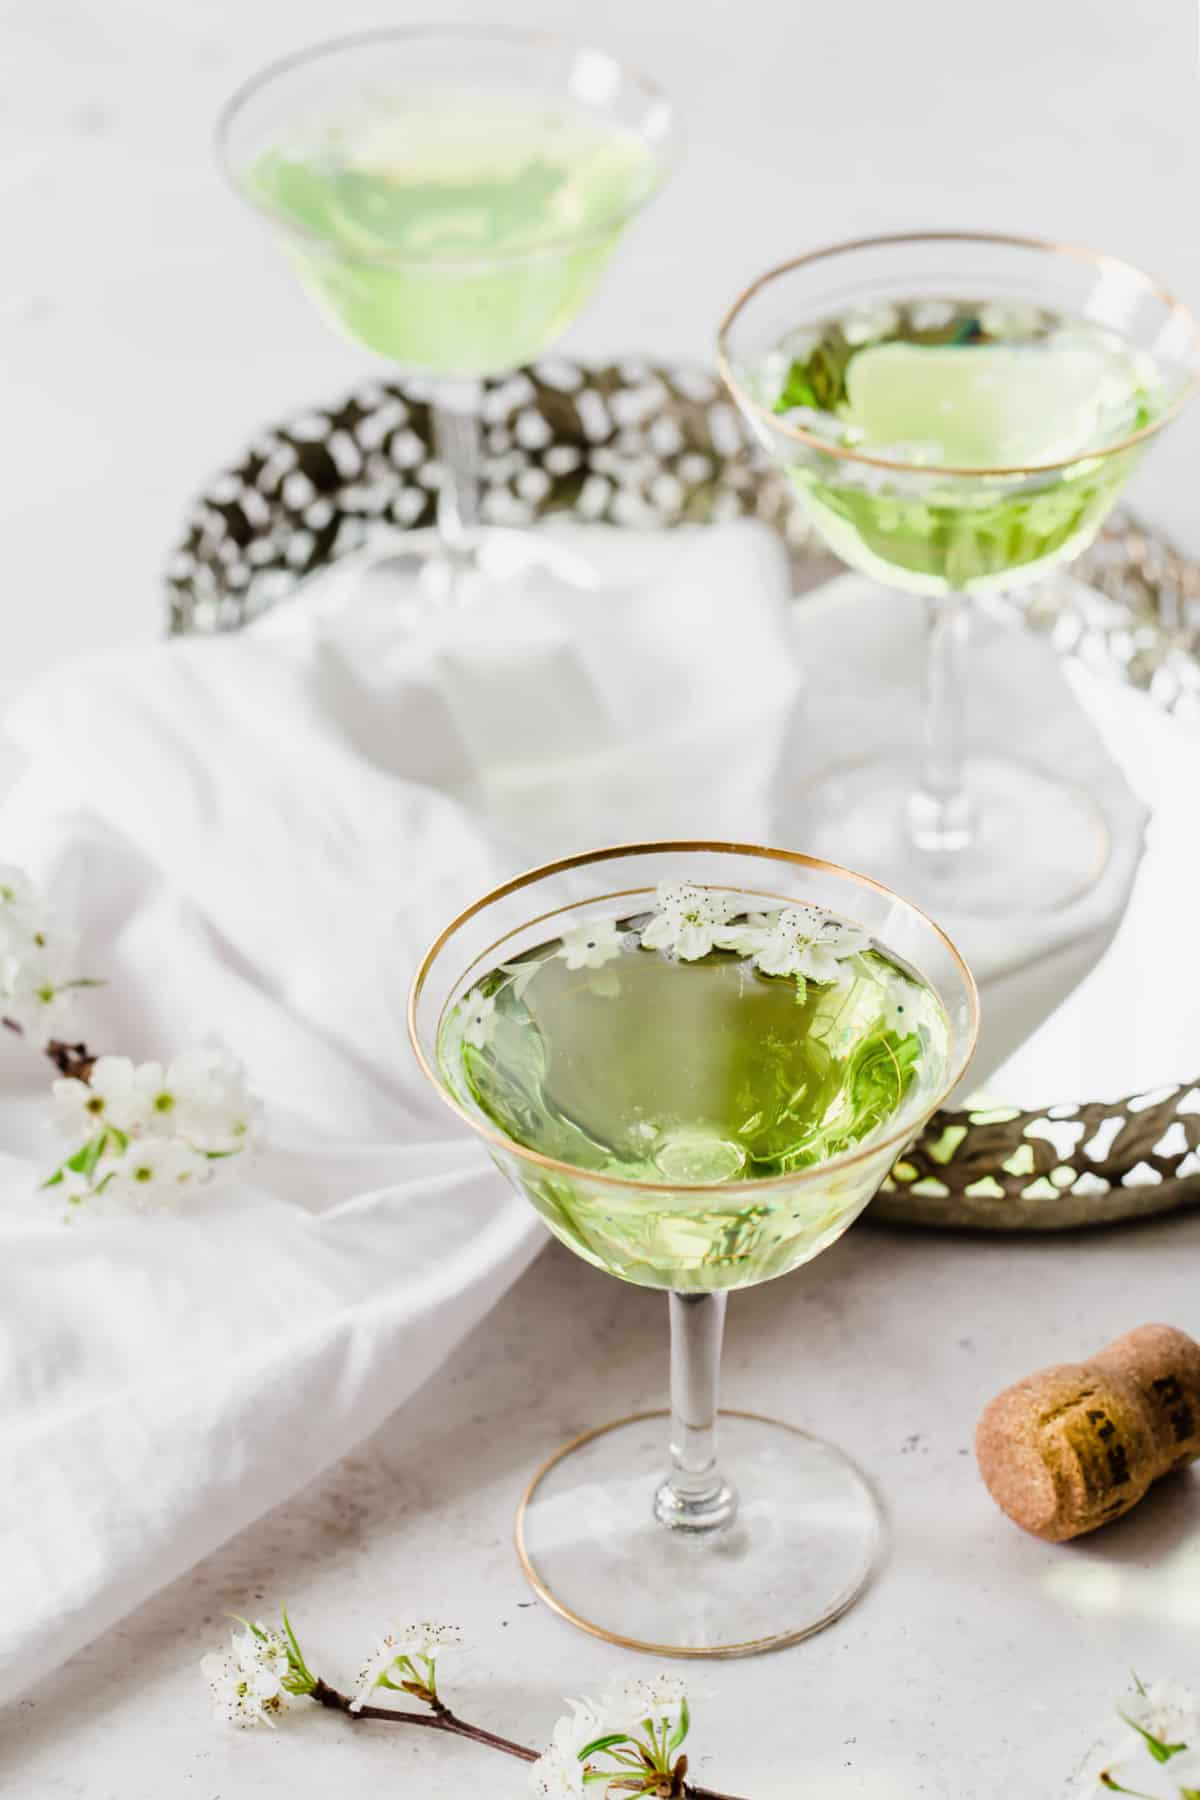 3 coupes with green cocktails, on white table